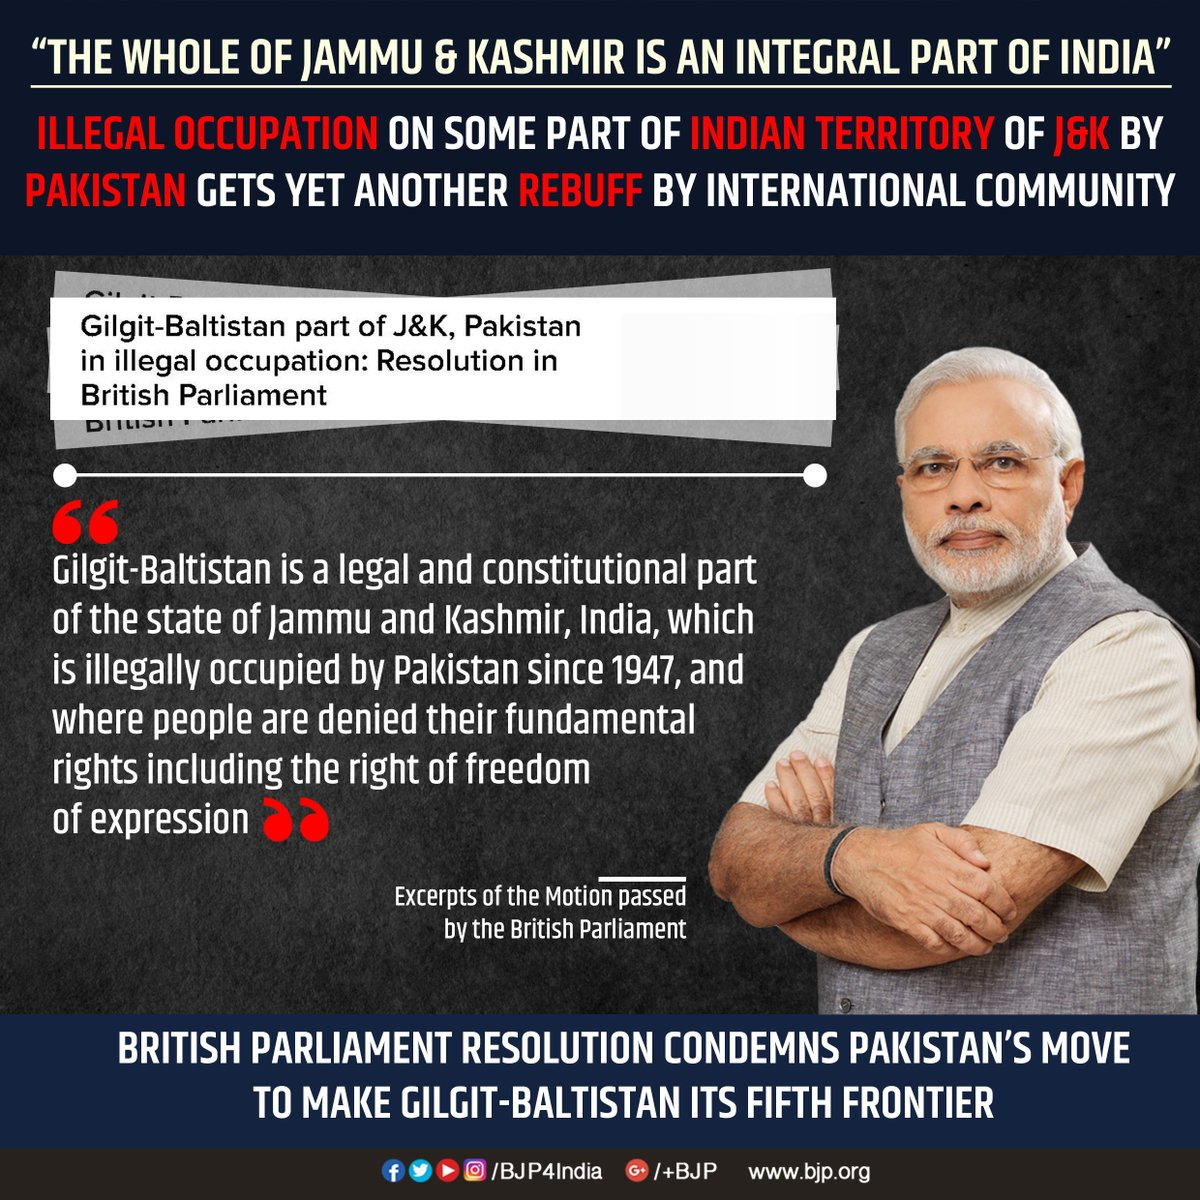 In yet another rebuff to Pakistan's illegal occupation of Gilgit-Baltistan, British Parliament resolution states it's legal part of India.